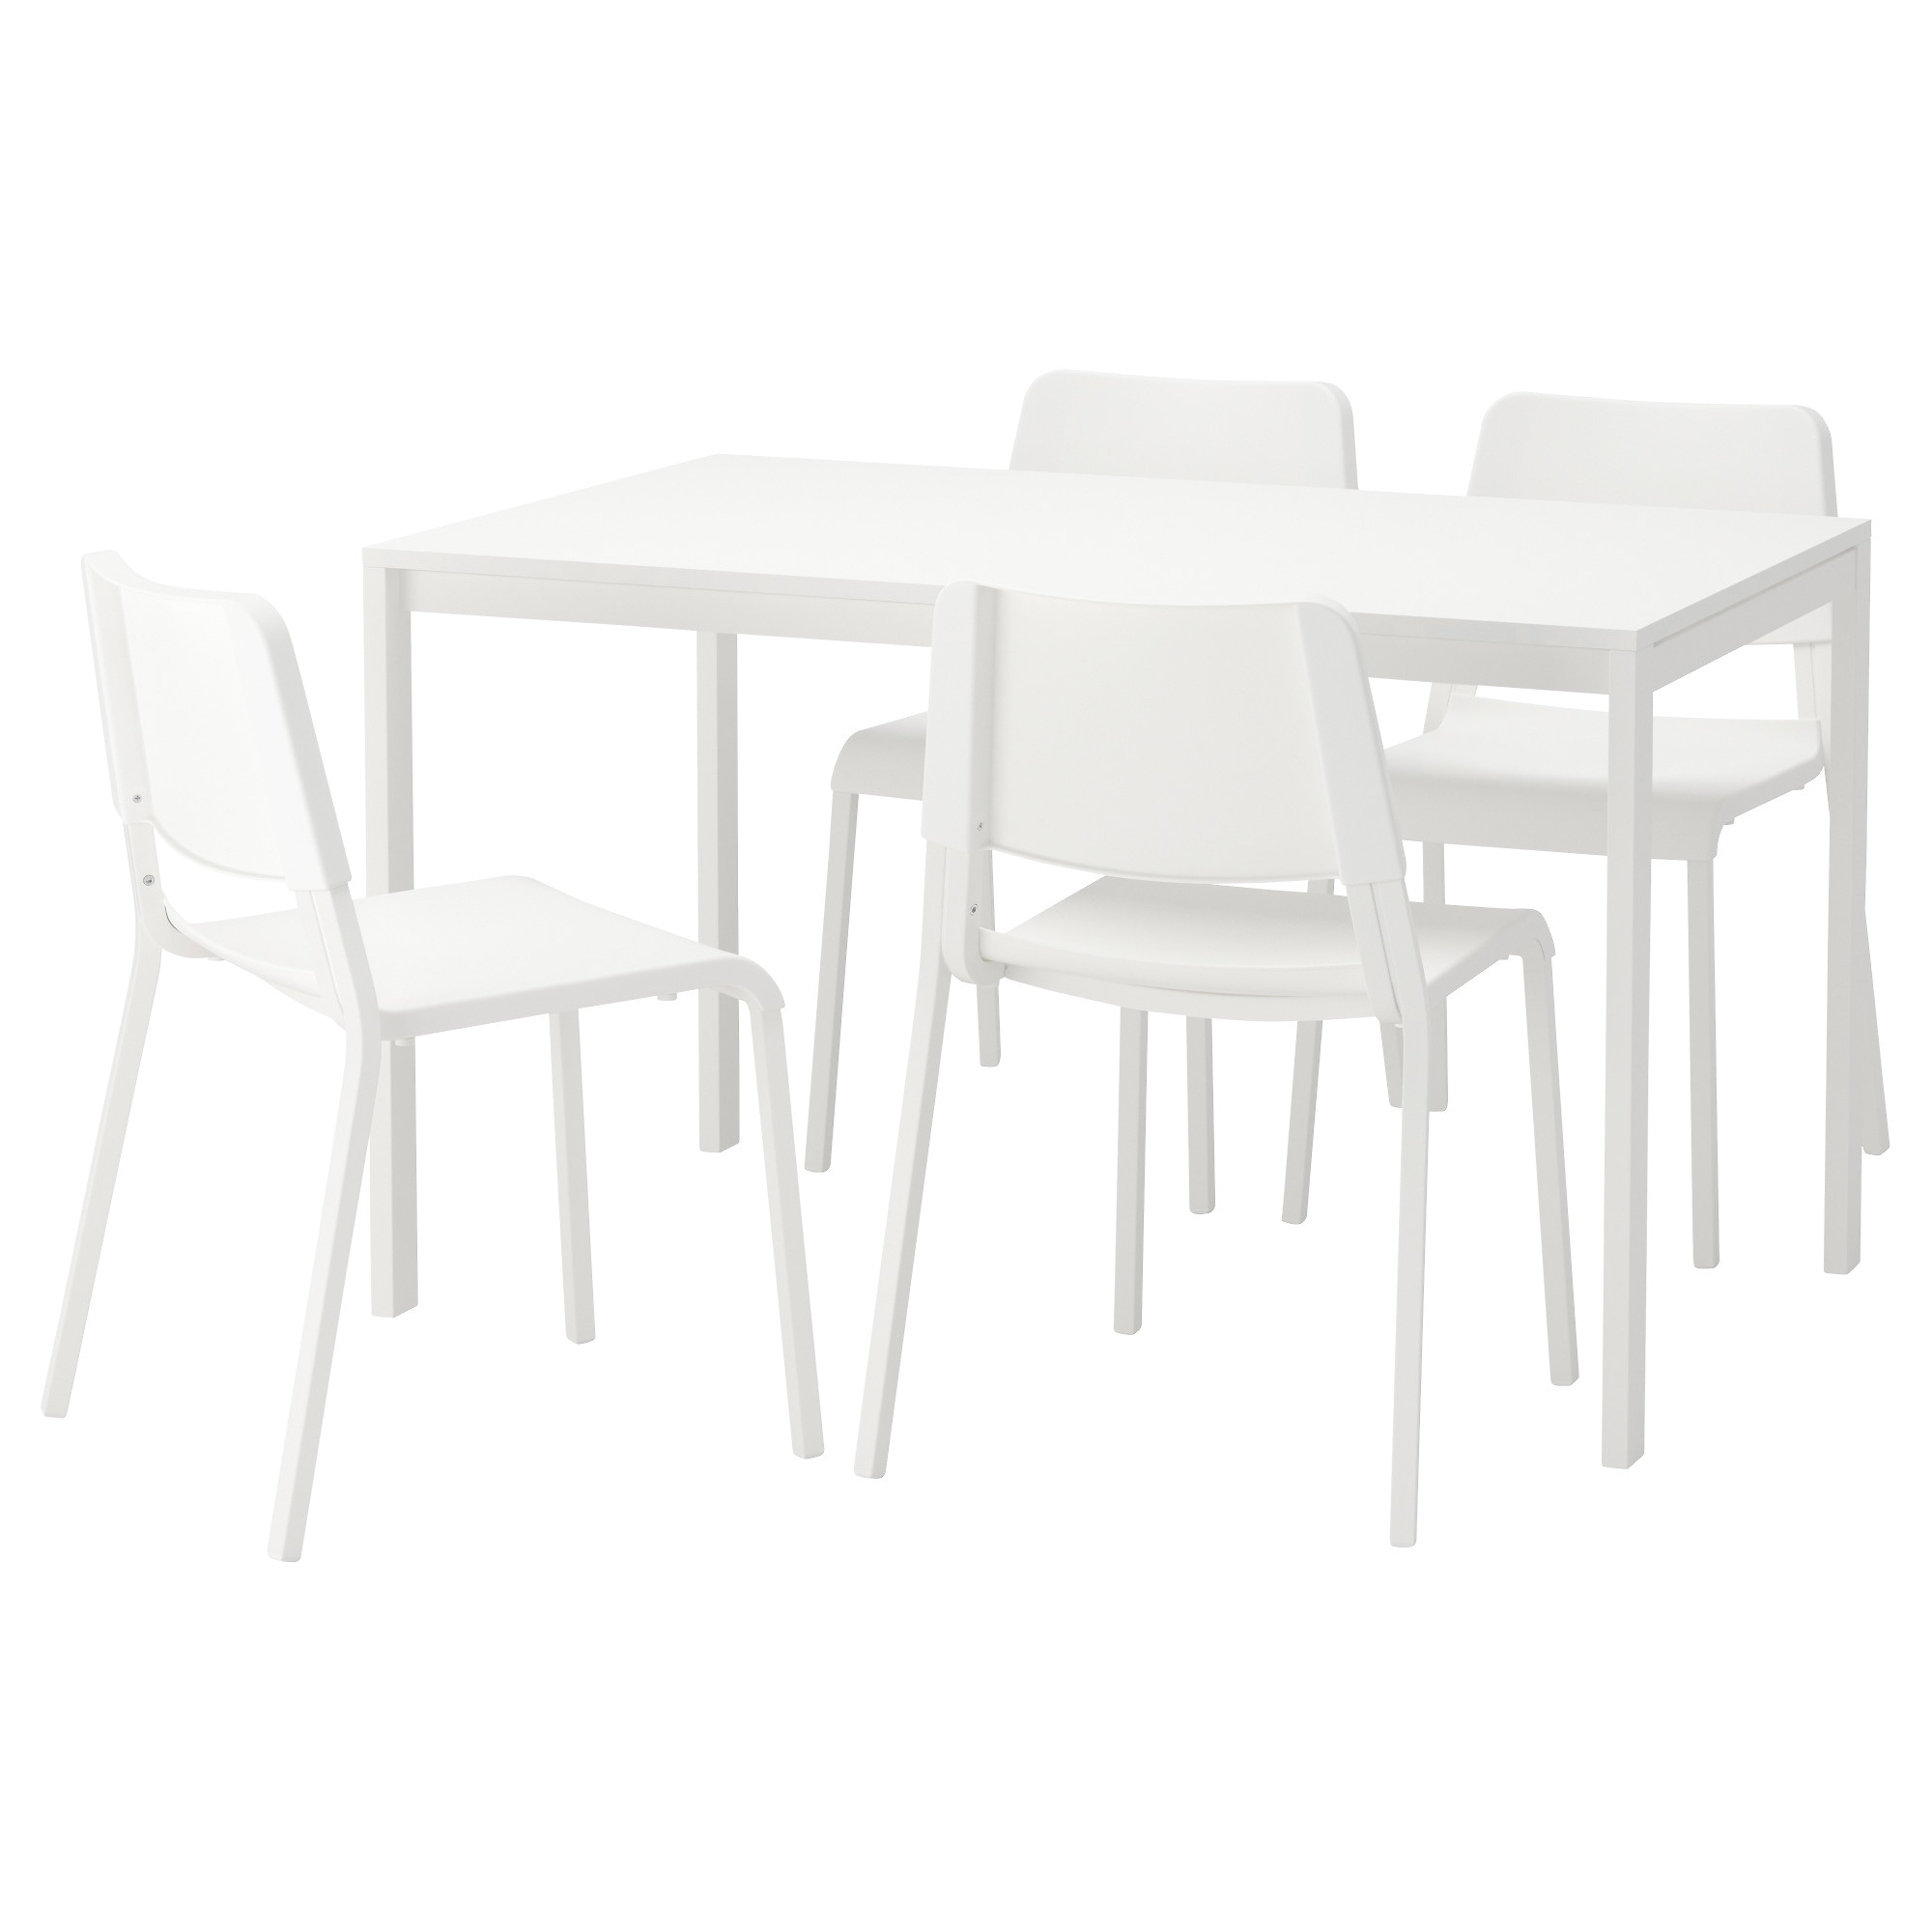 MELLTORP / TEODORES table and 4 chairs, white Length: 49 1/4